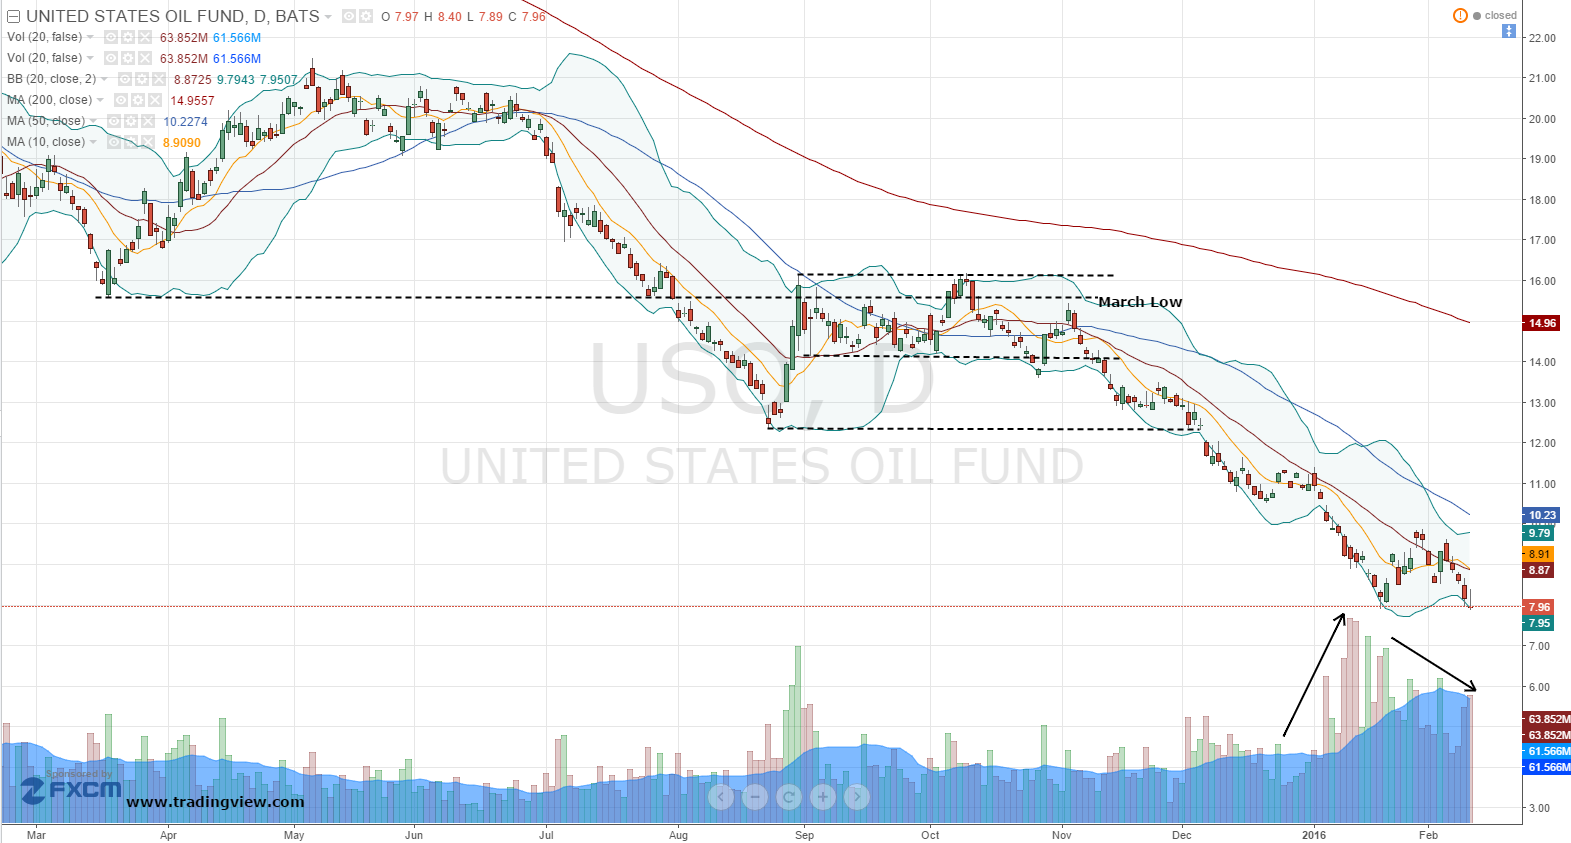 United states oil fund lp etf go long uso for no cost investorplace